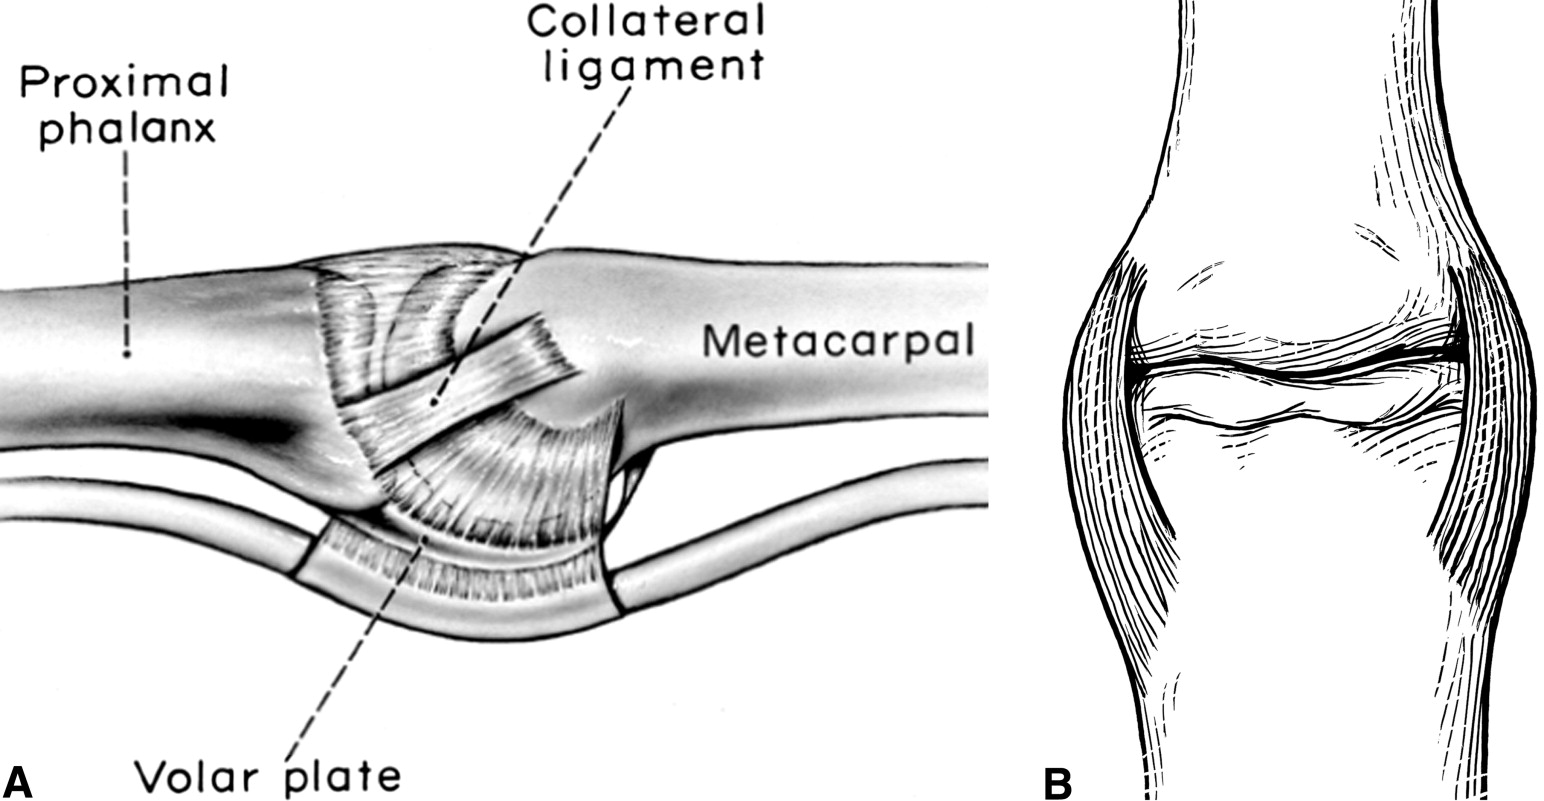 Evaluation of Collateral Ligament Injuries of the ...